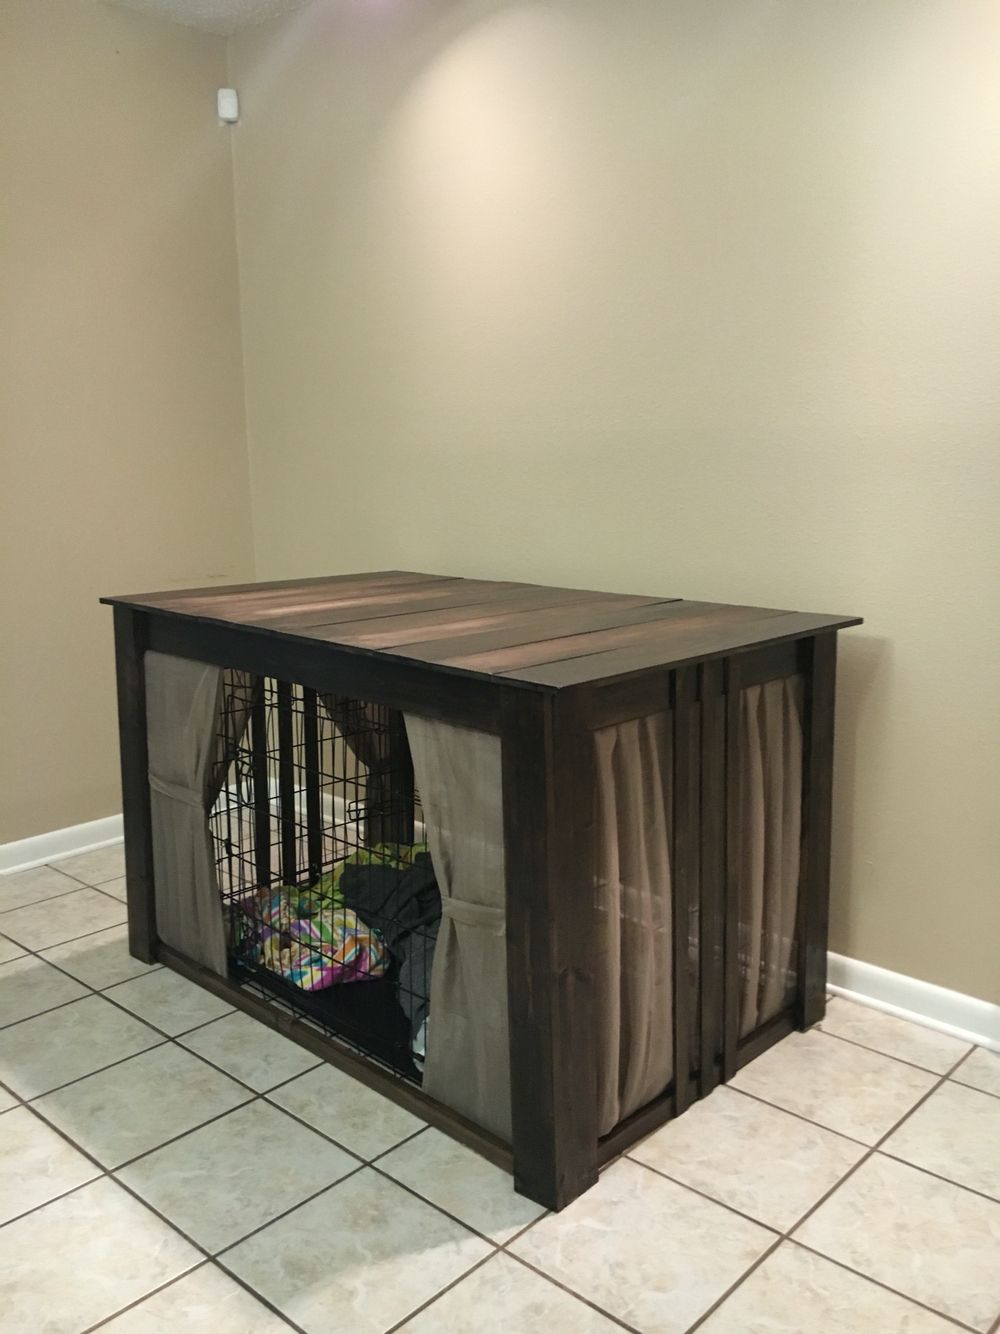 Dog Crate Cover We Made It From Unfinished Pine Wood From Home Depot Stain Color Kona Dog Crate Furniture Diy Dog Crate Dog Furniture